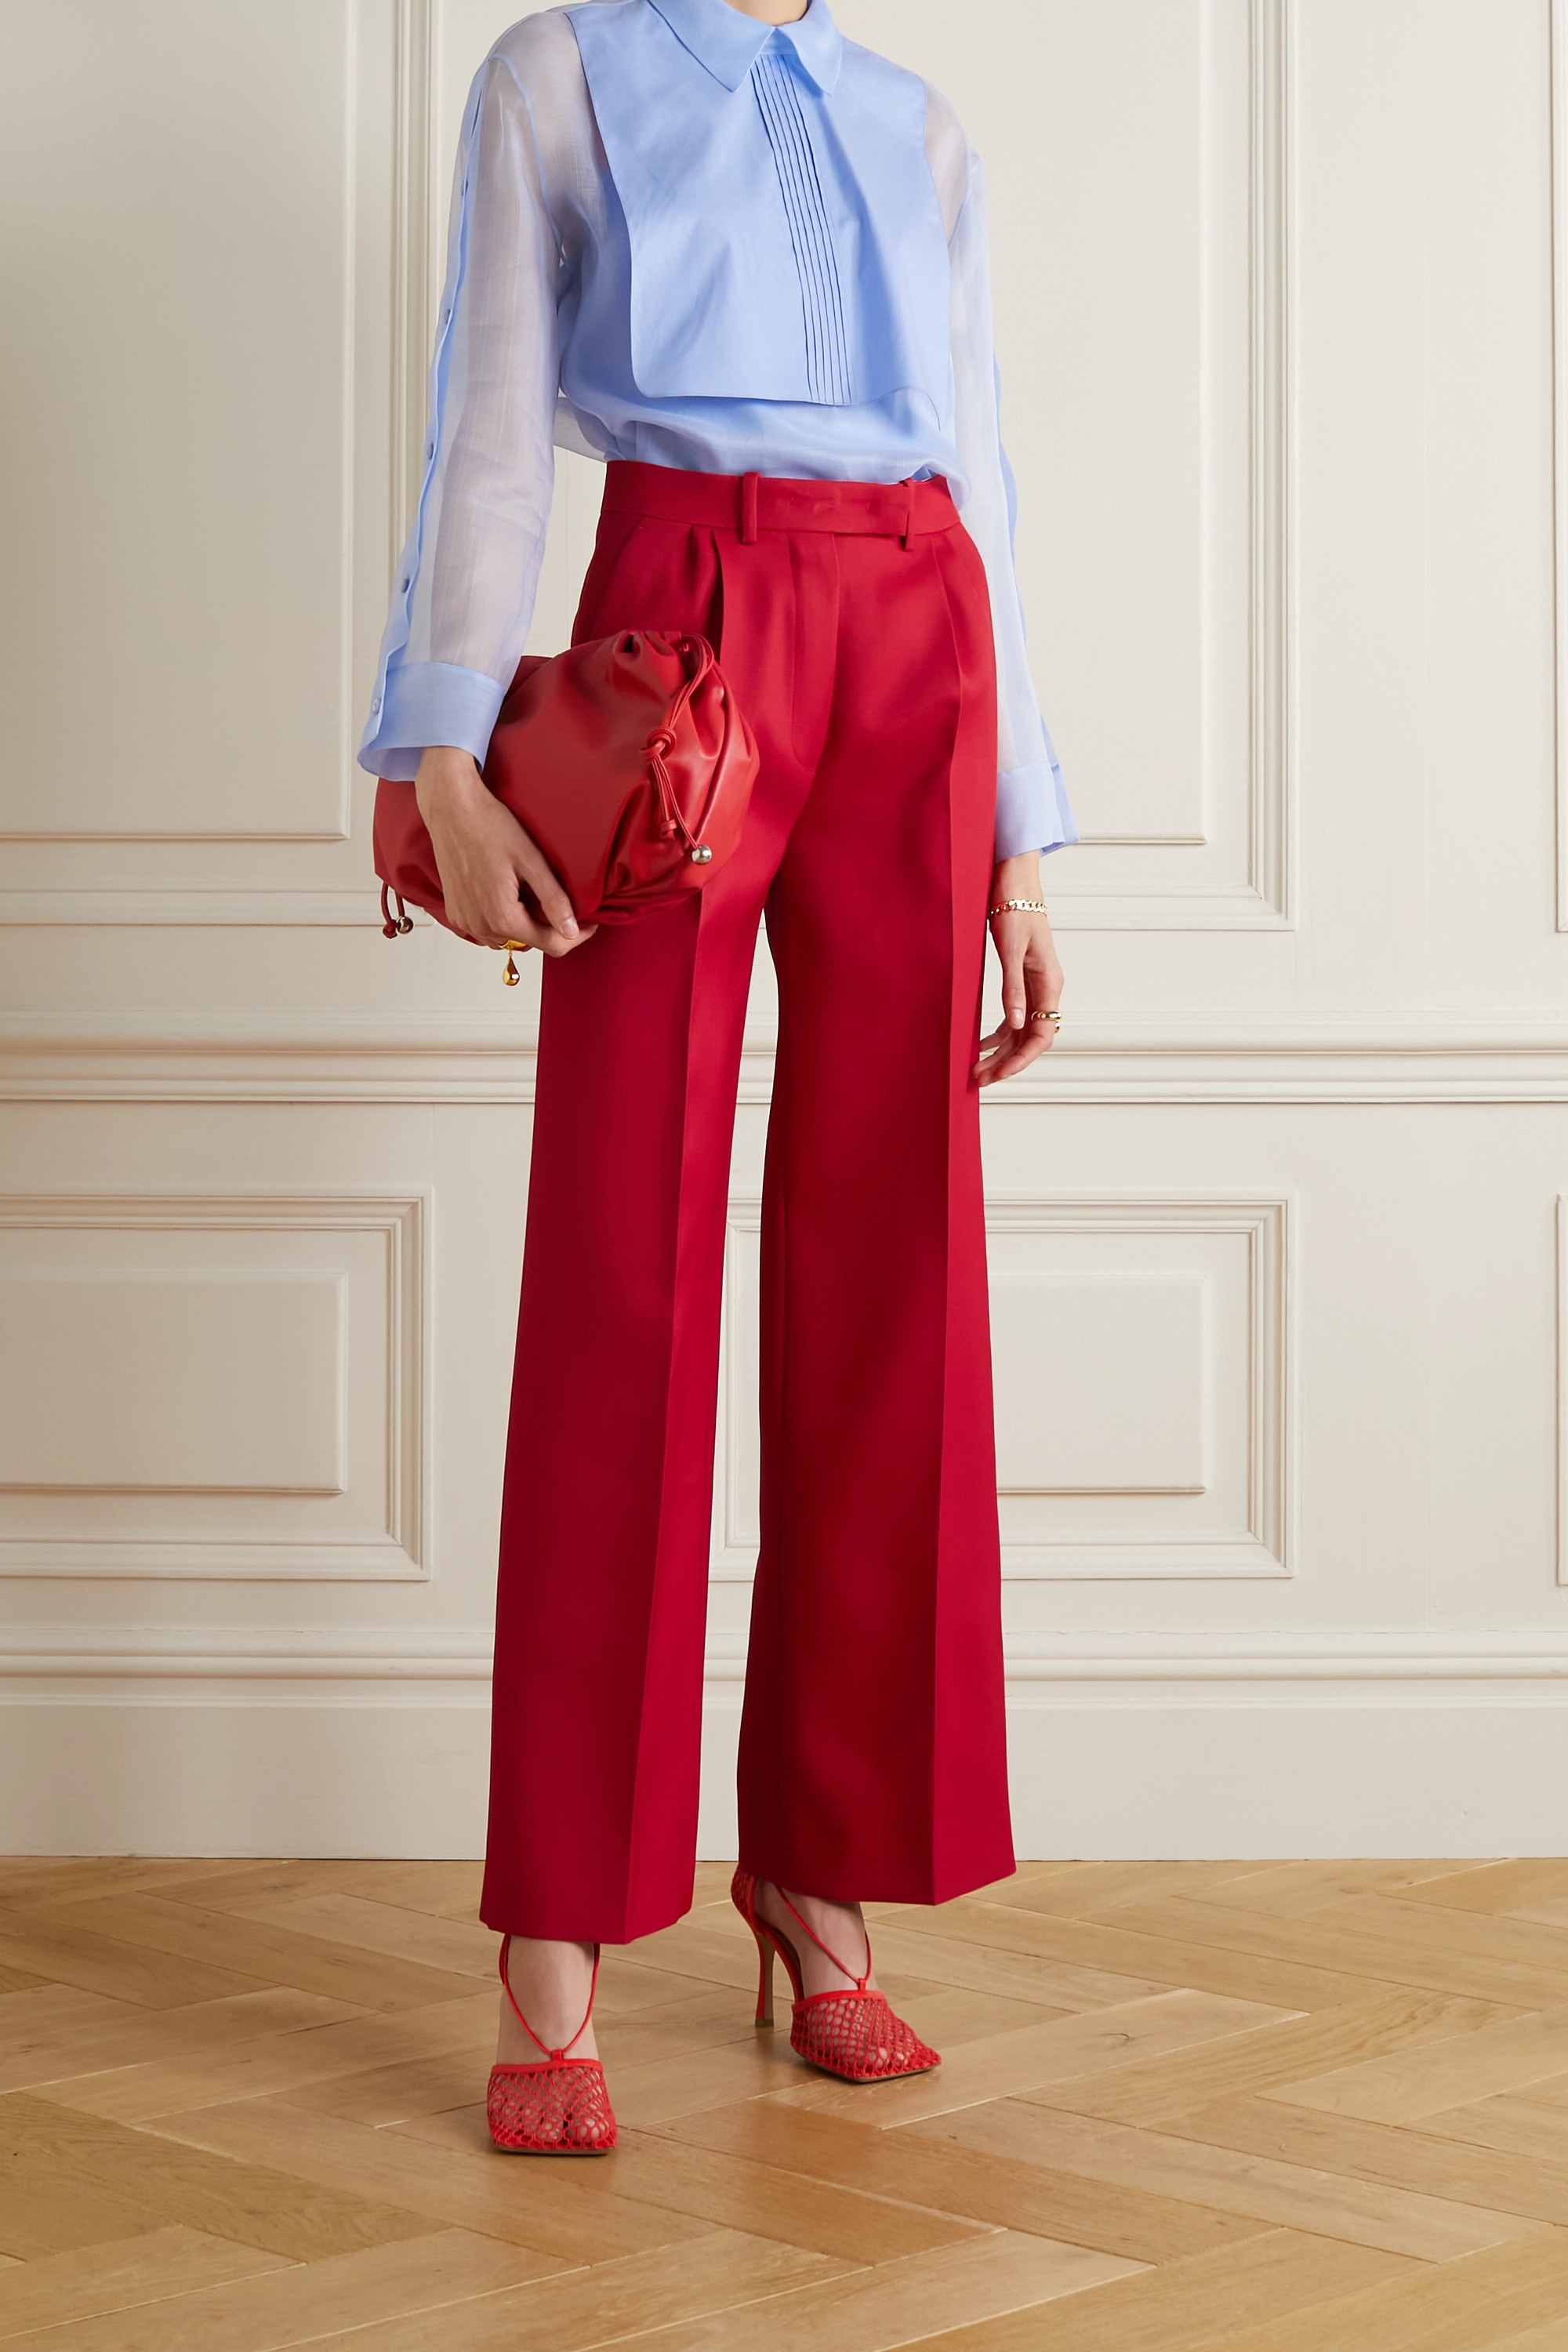 FENDI Grain de poudre wool-blend wide-leg pants